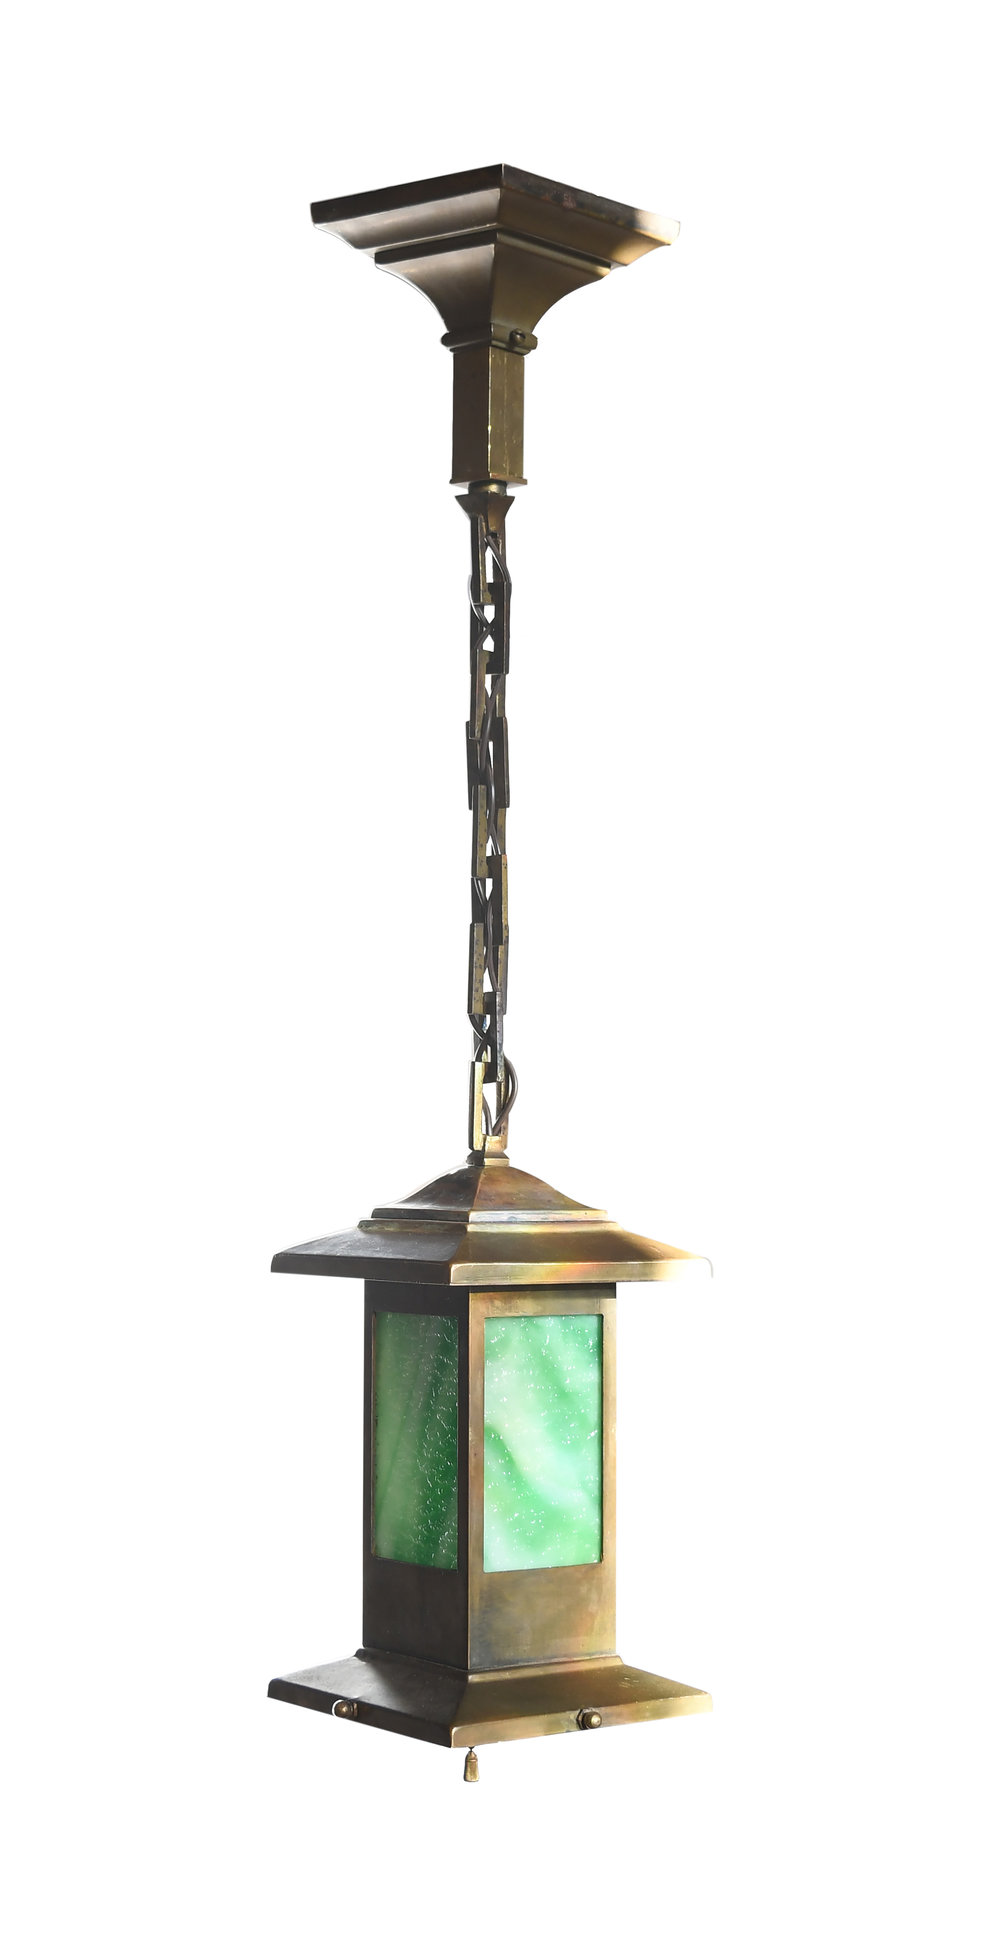 47596-rectangular-brass-handel-pendant-with-green-glass-overall-1.jpg